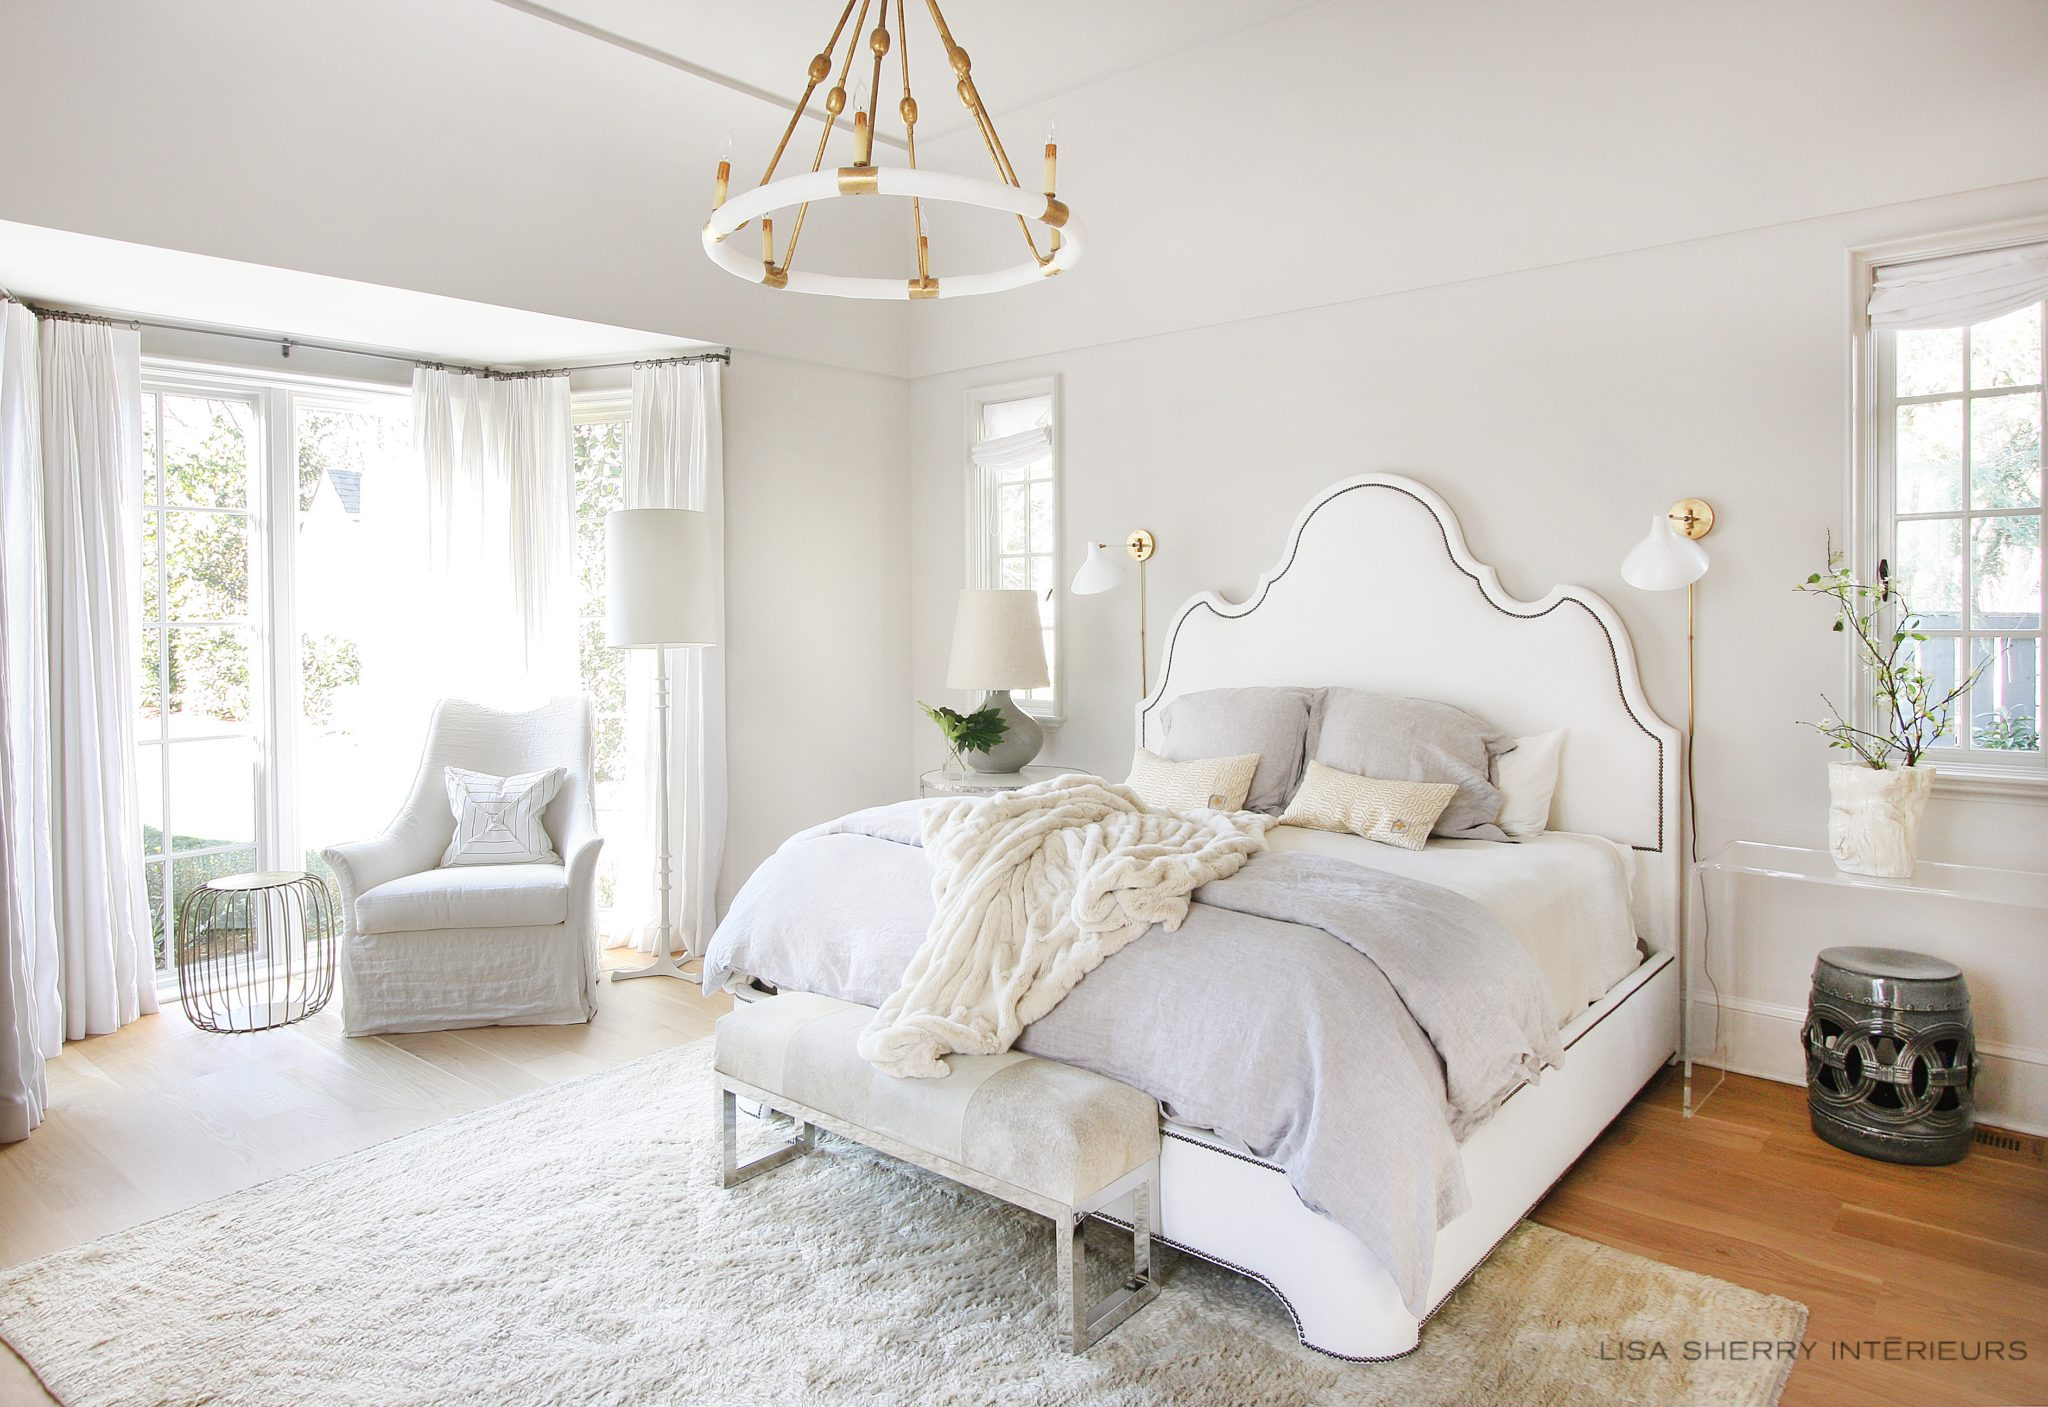 Classic Modern Master Bedroom by Lisa Sherry Interieurs